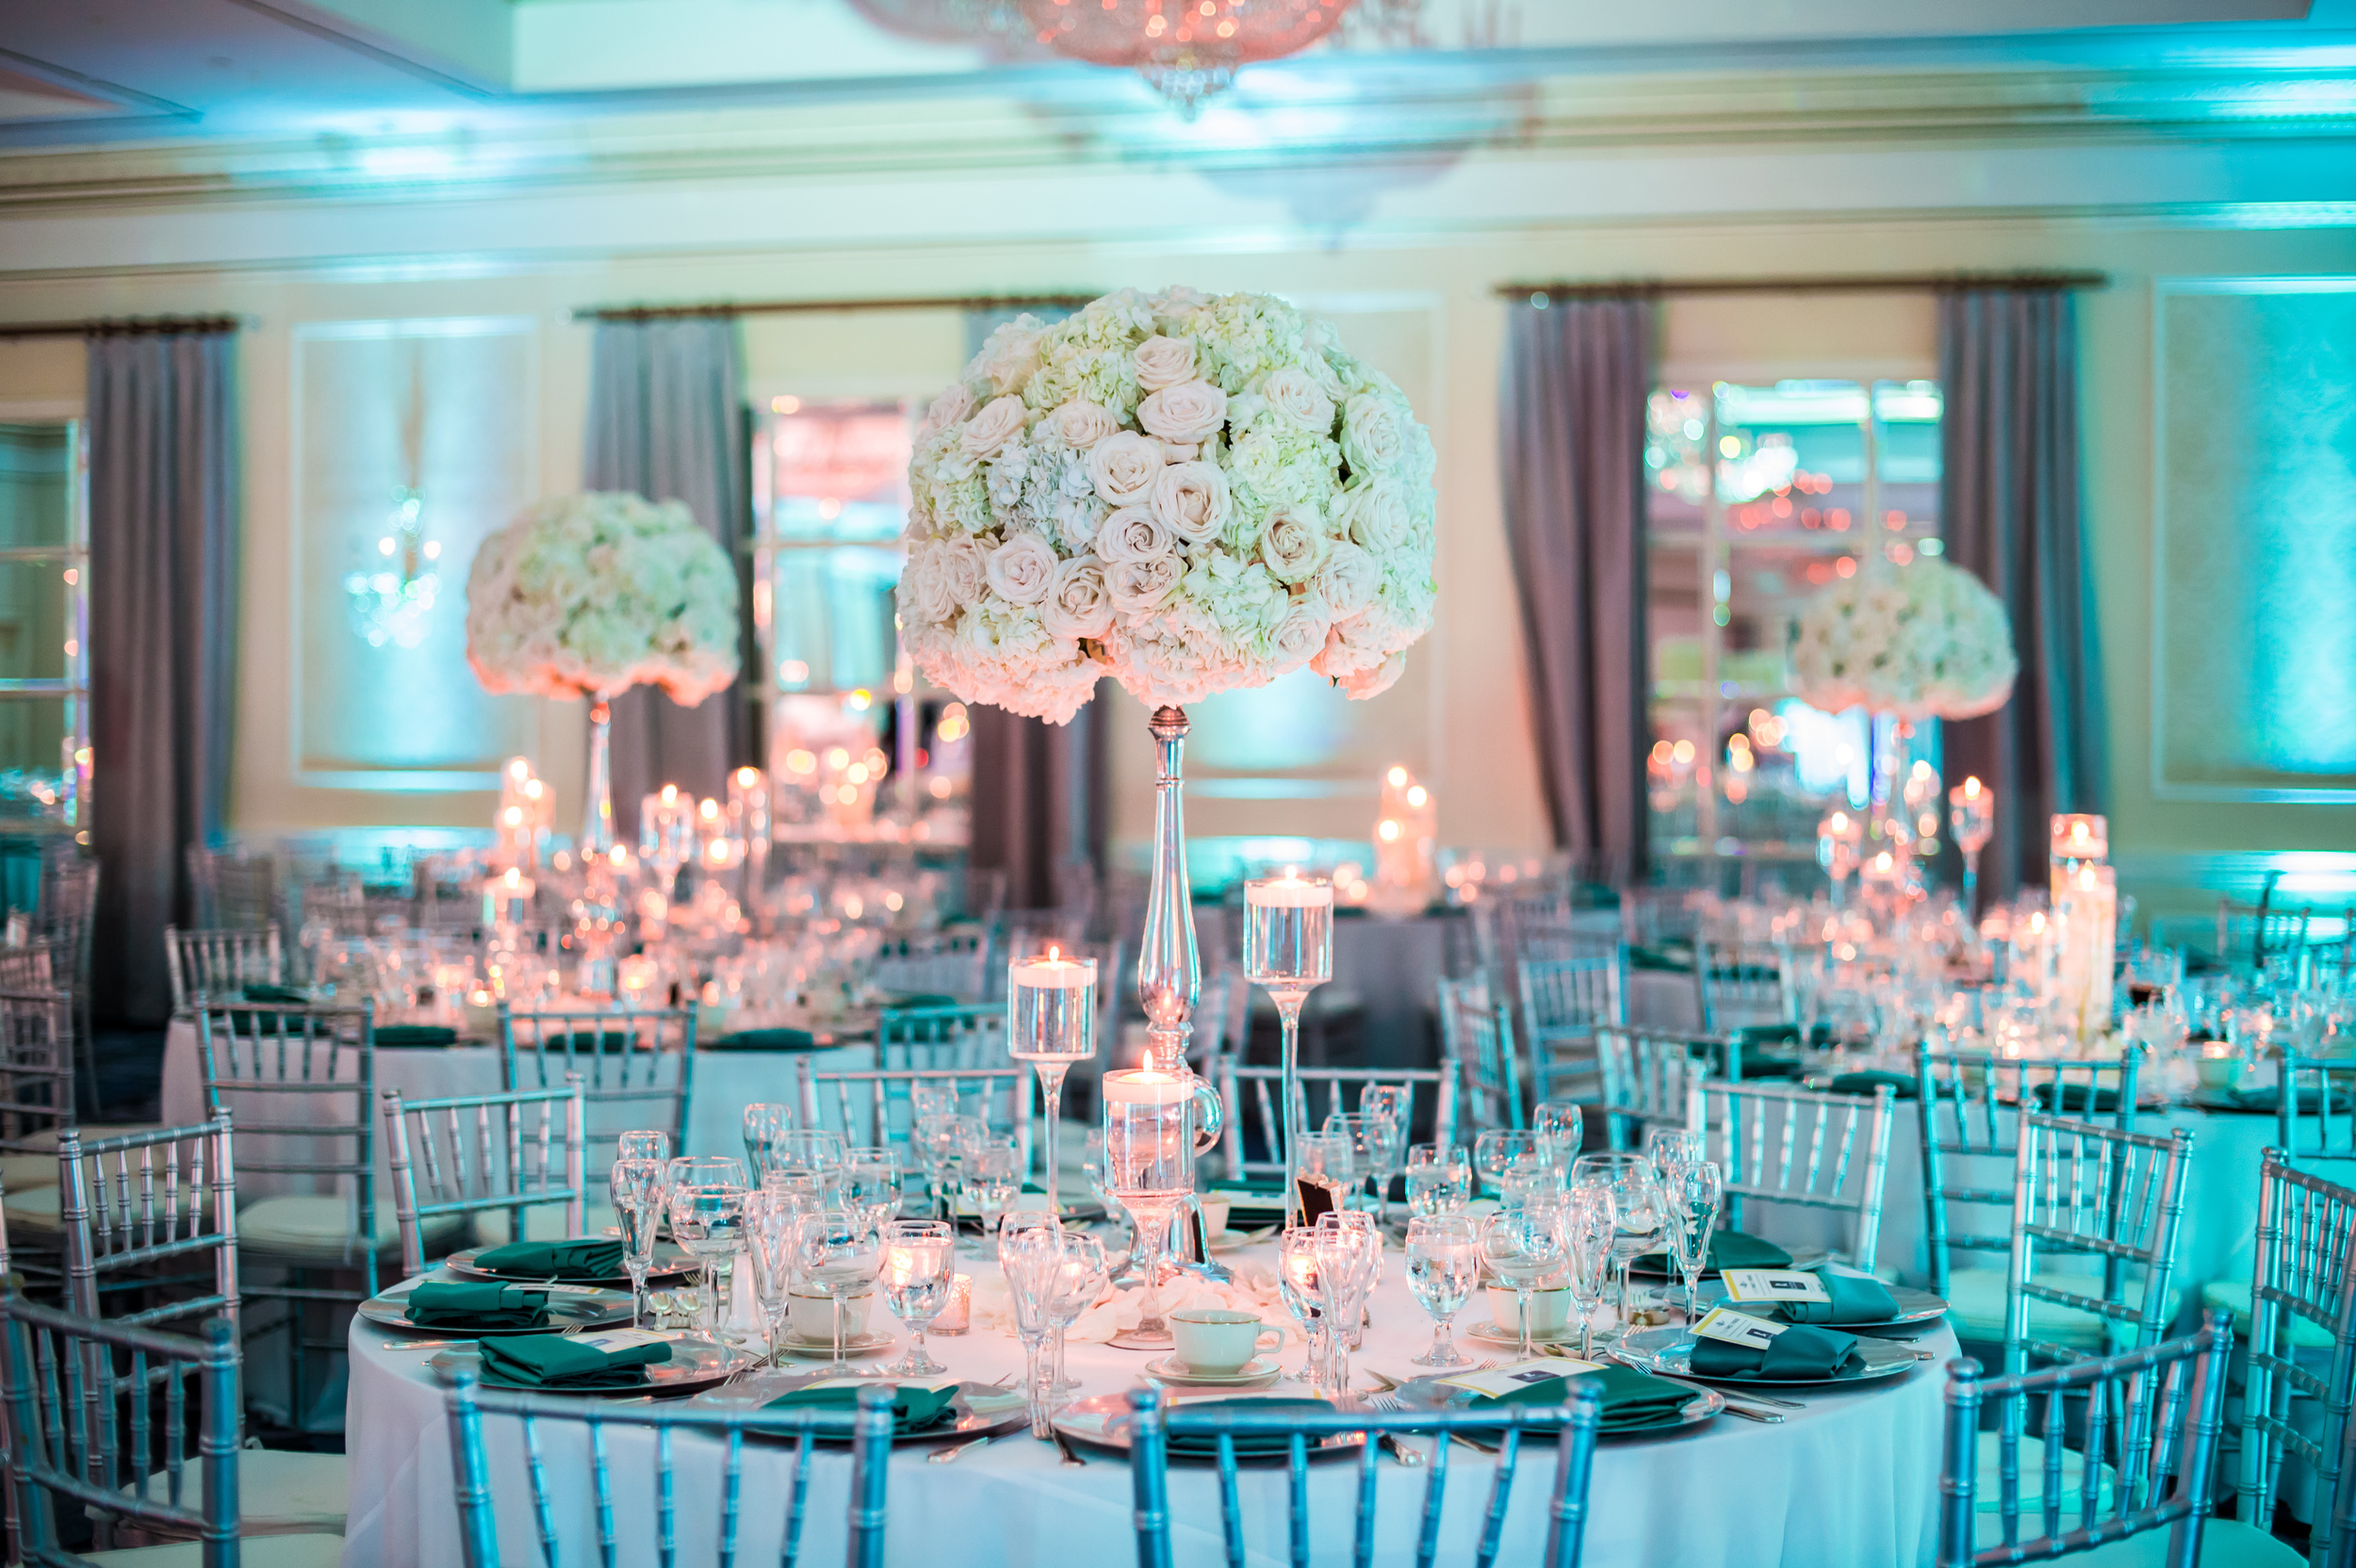 LARGE WHITE CENTERPIECE